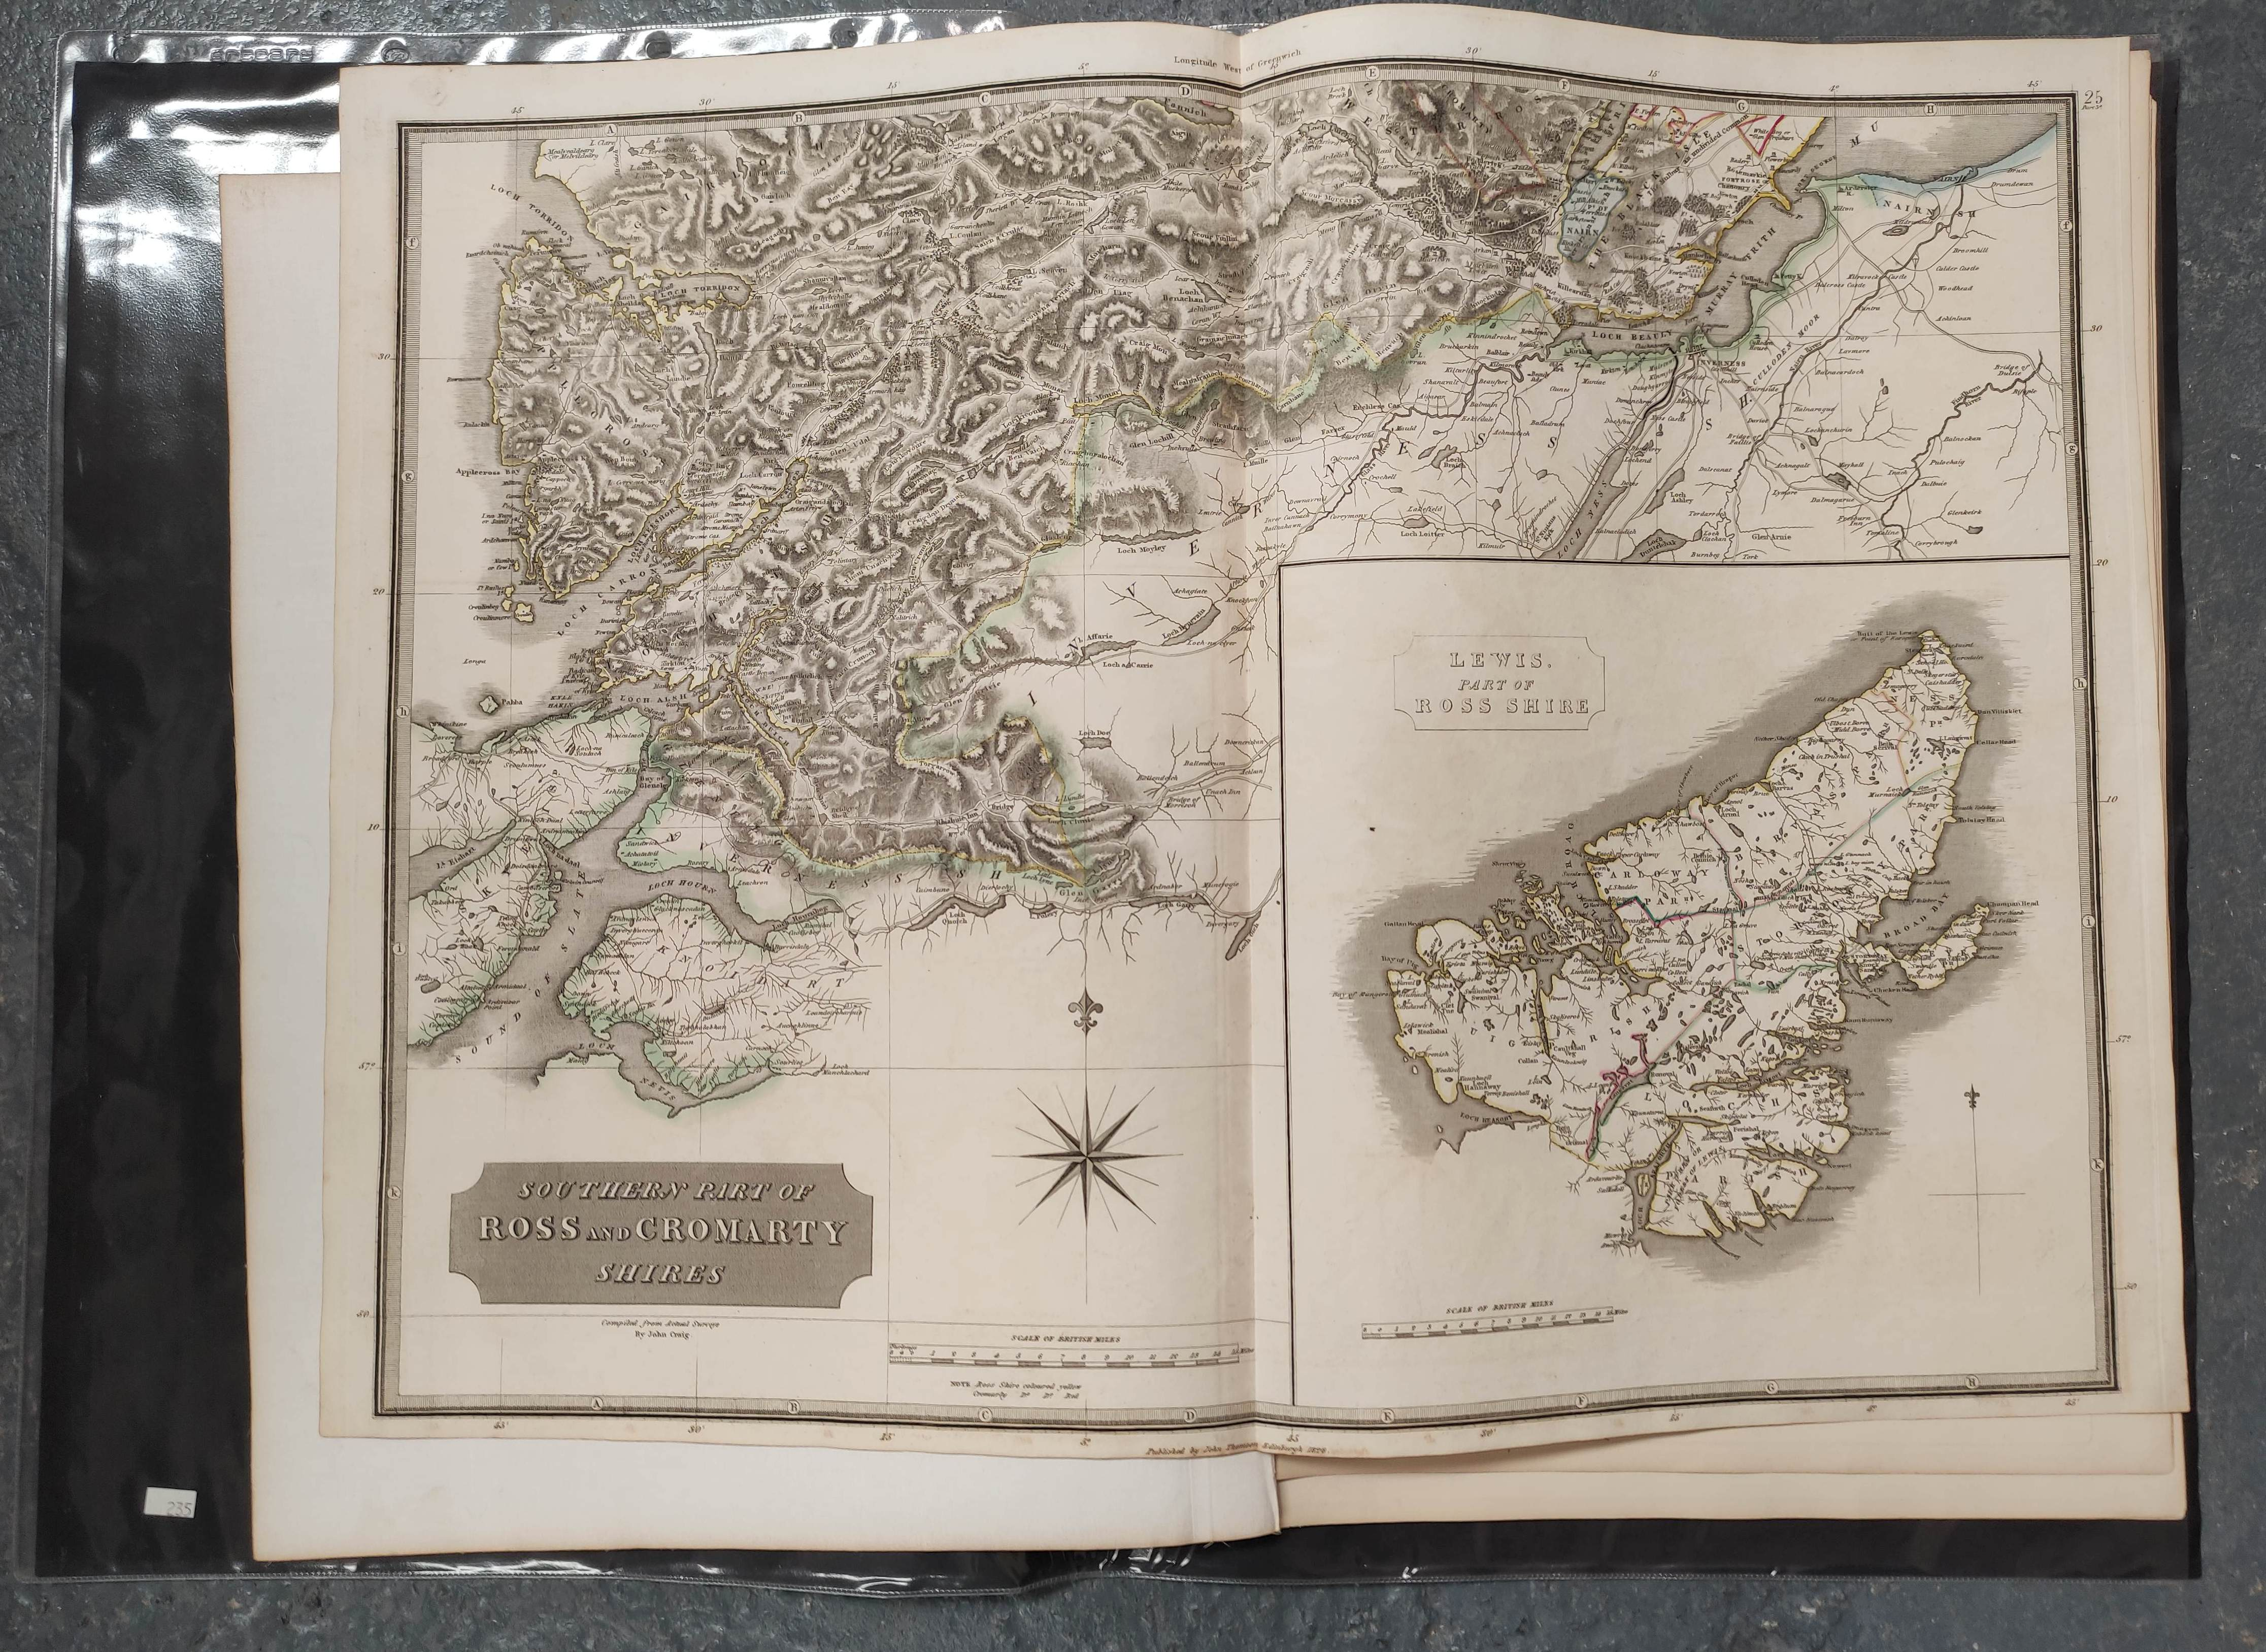 JOHNSON W. & A. K.Map of the County of Inverness with the railways. 4 part eng. map, hand col. - Image 4 of 6